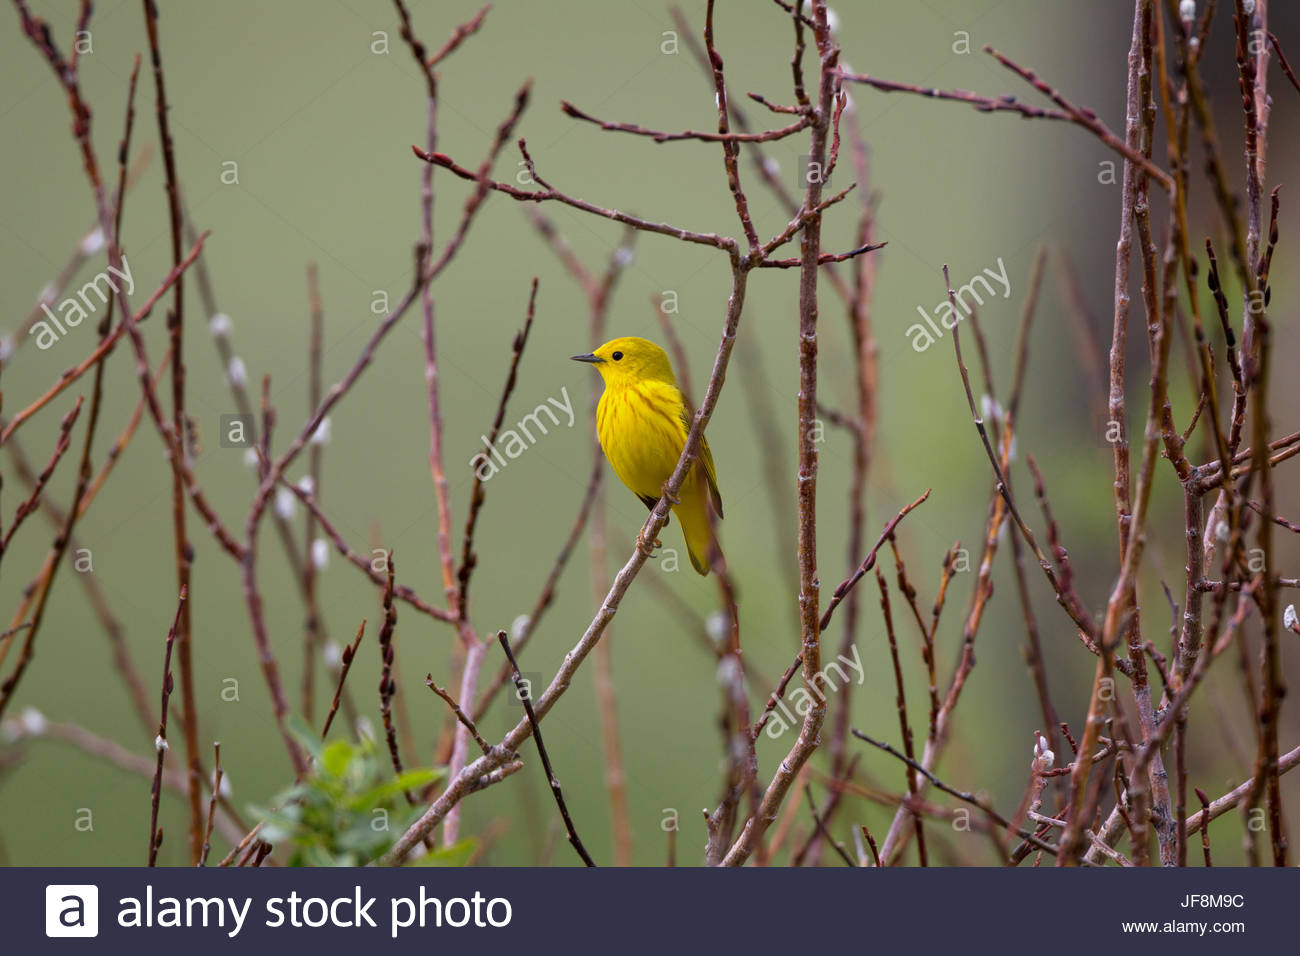 A male yellow warbler, Dendroica petechia, perched on a twig. - Stock Image